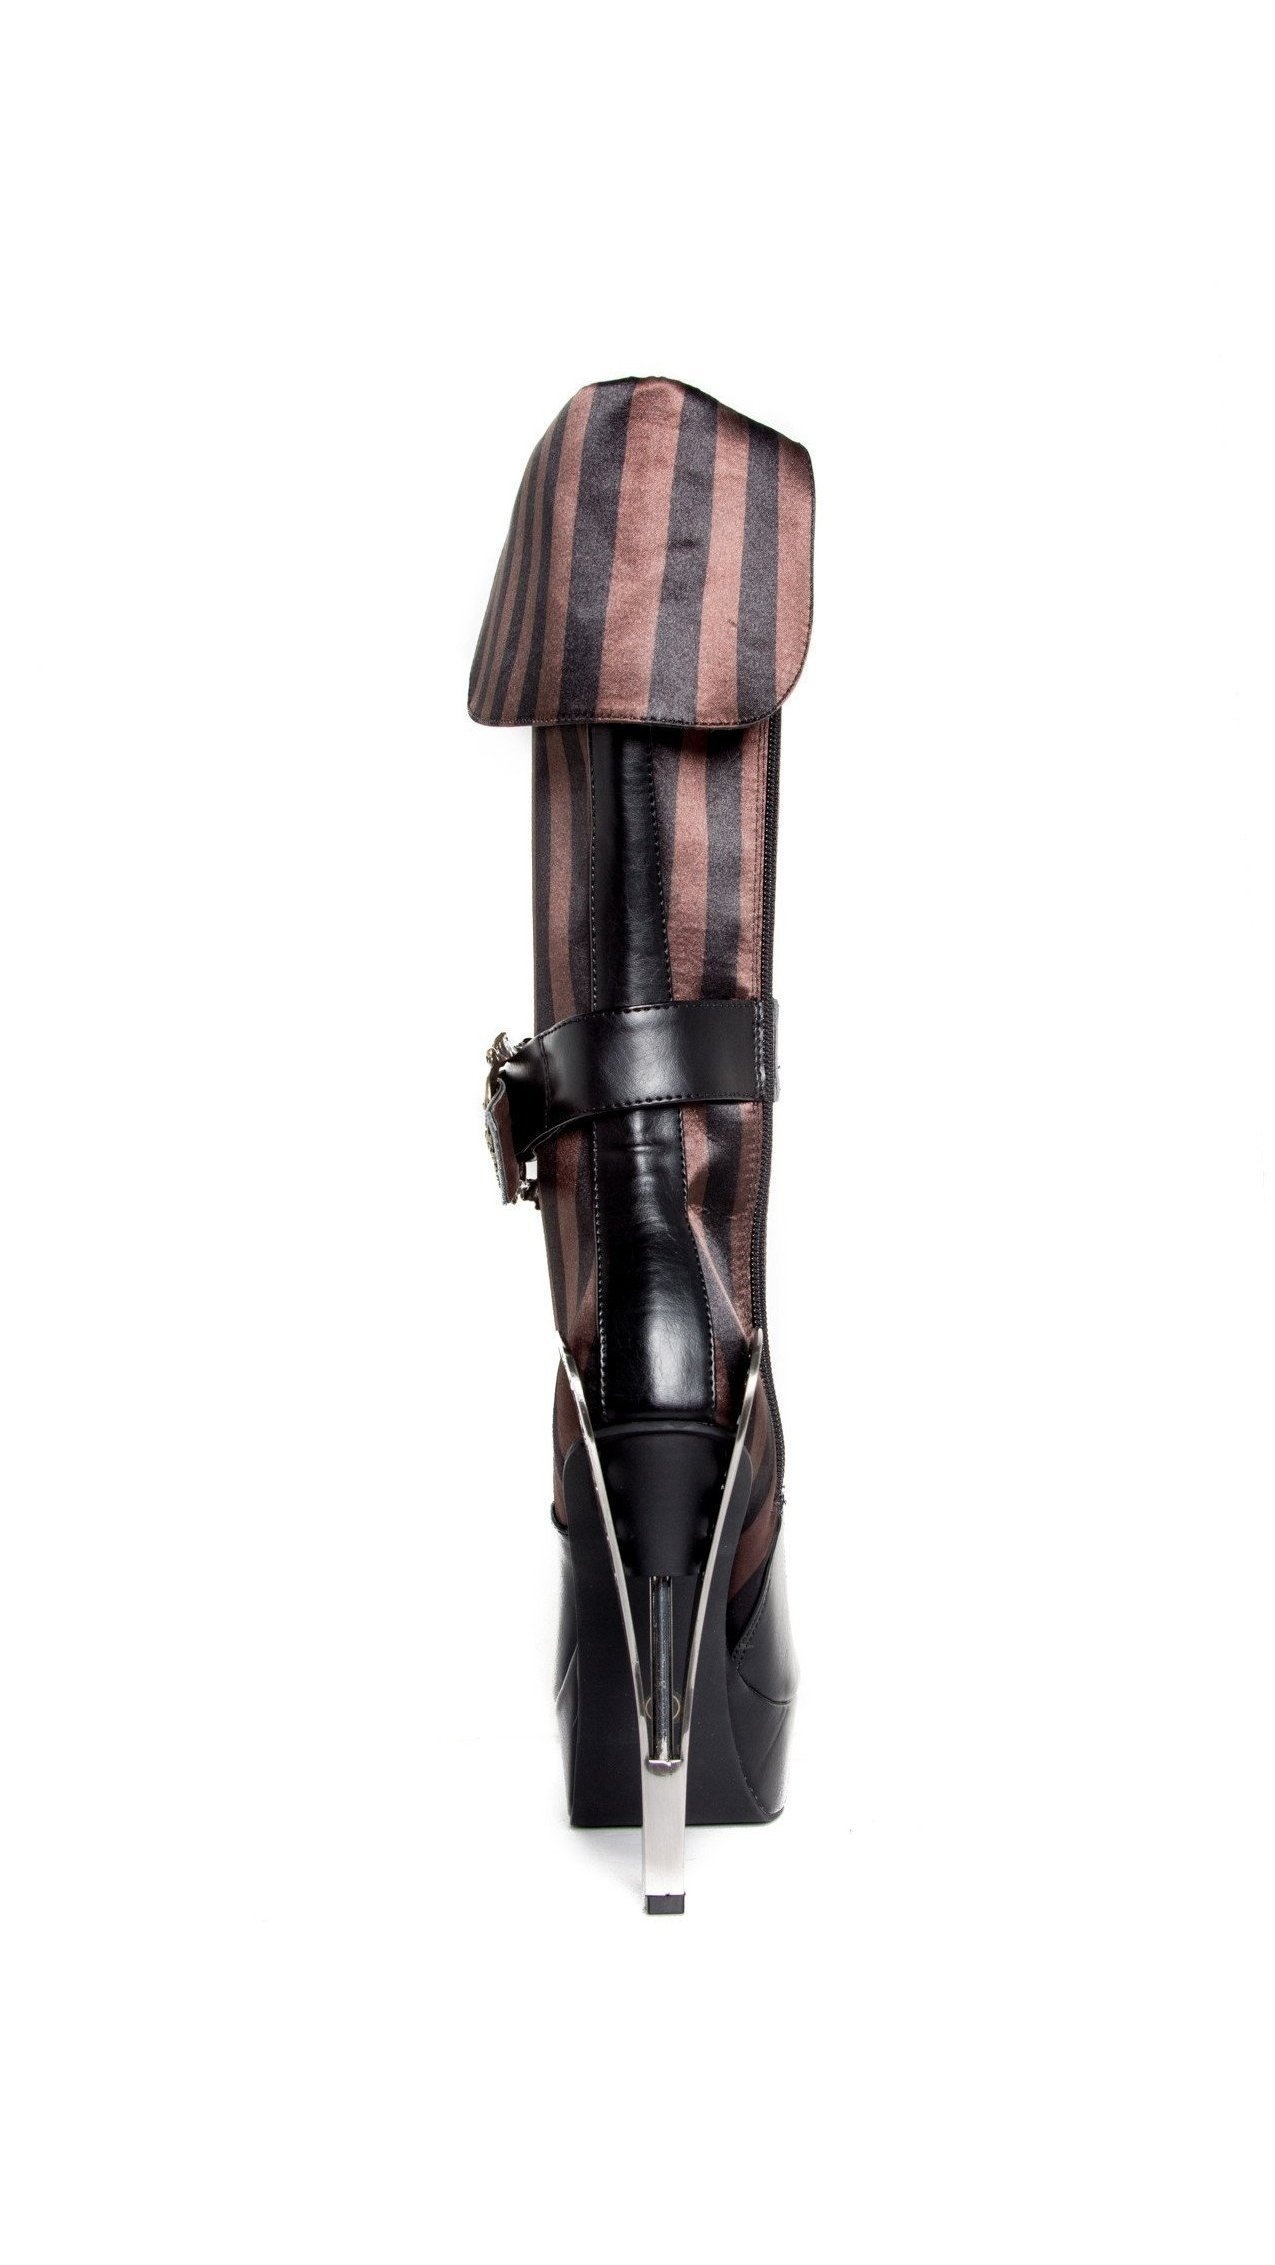 Hades high Shoes H-ETHEREAL Beautiful Victorian knee high Hades boots 7 / Black 569249